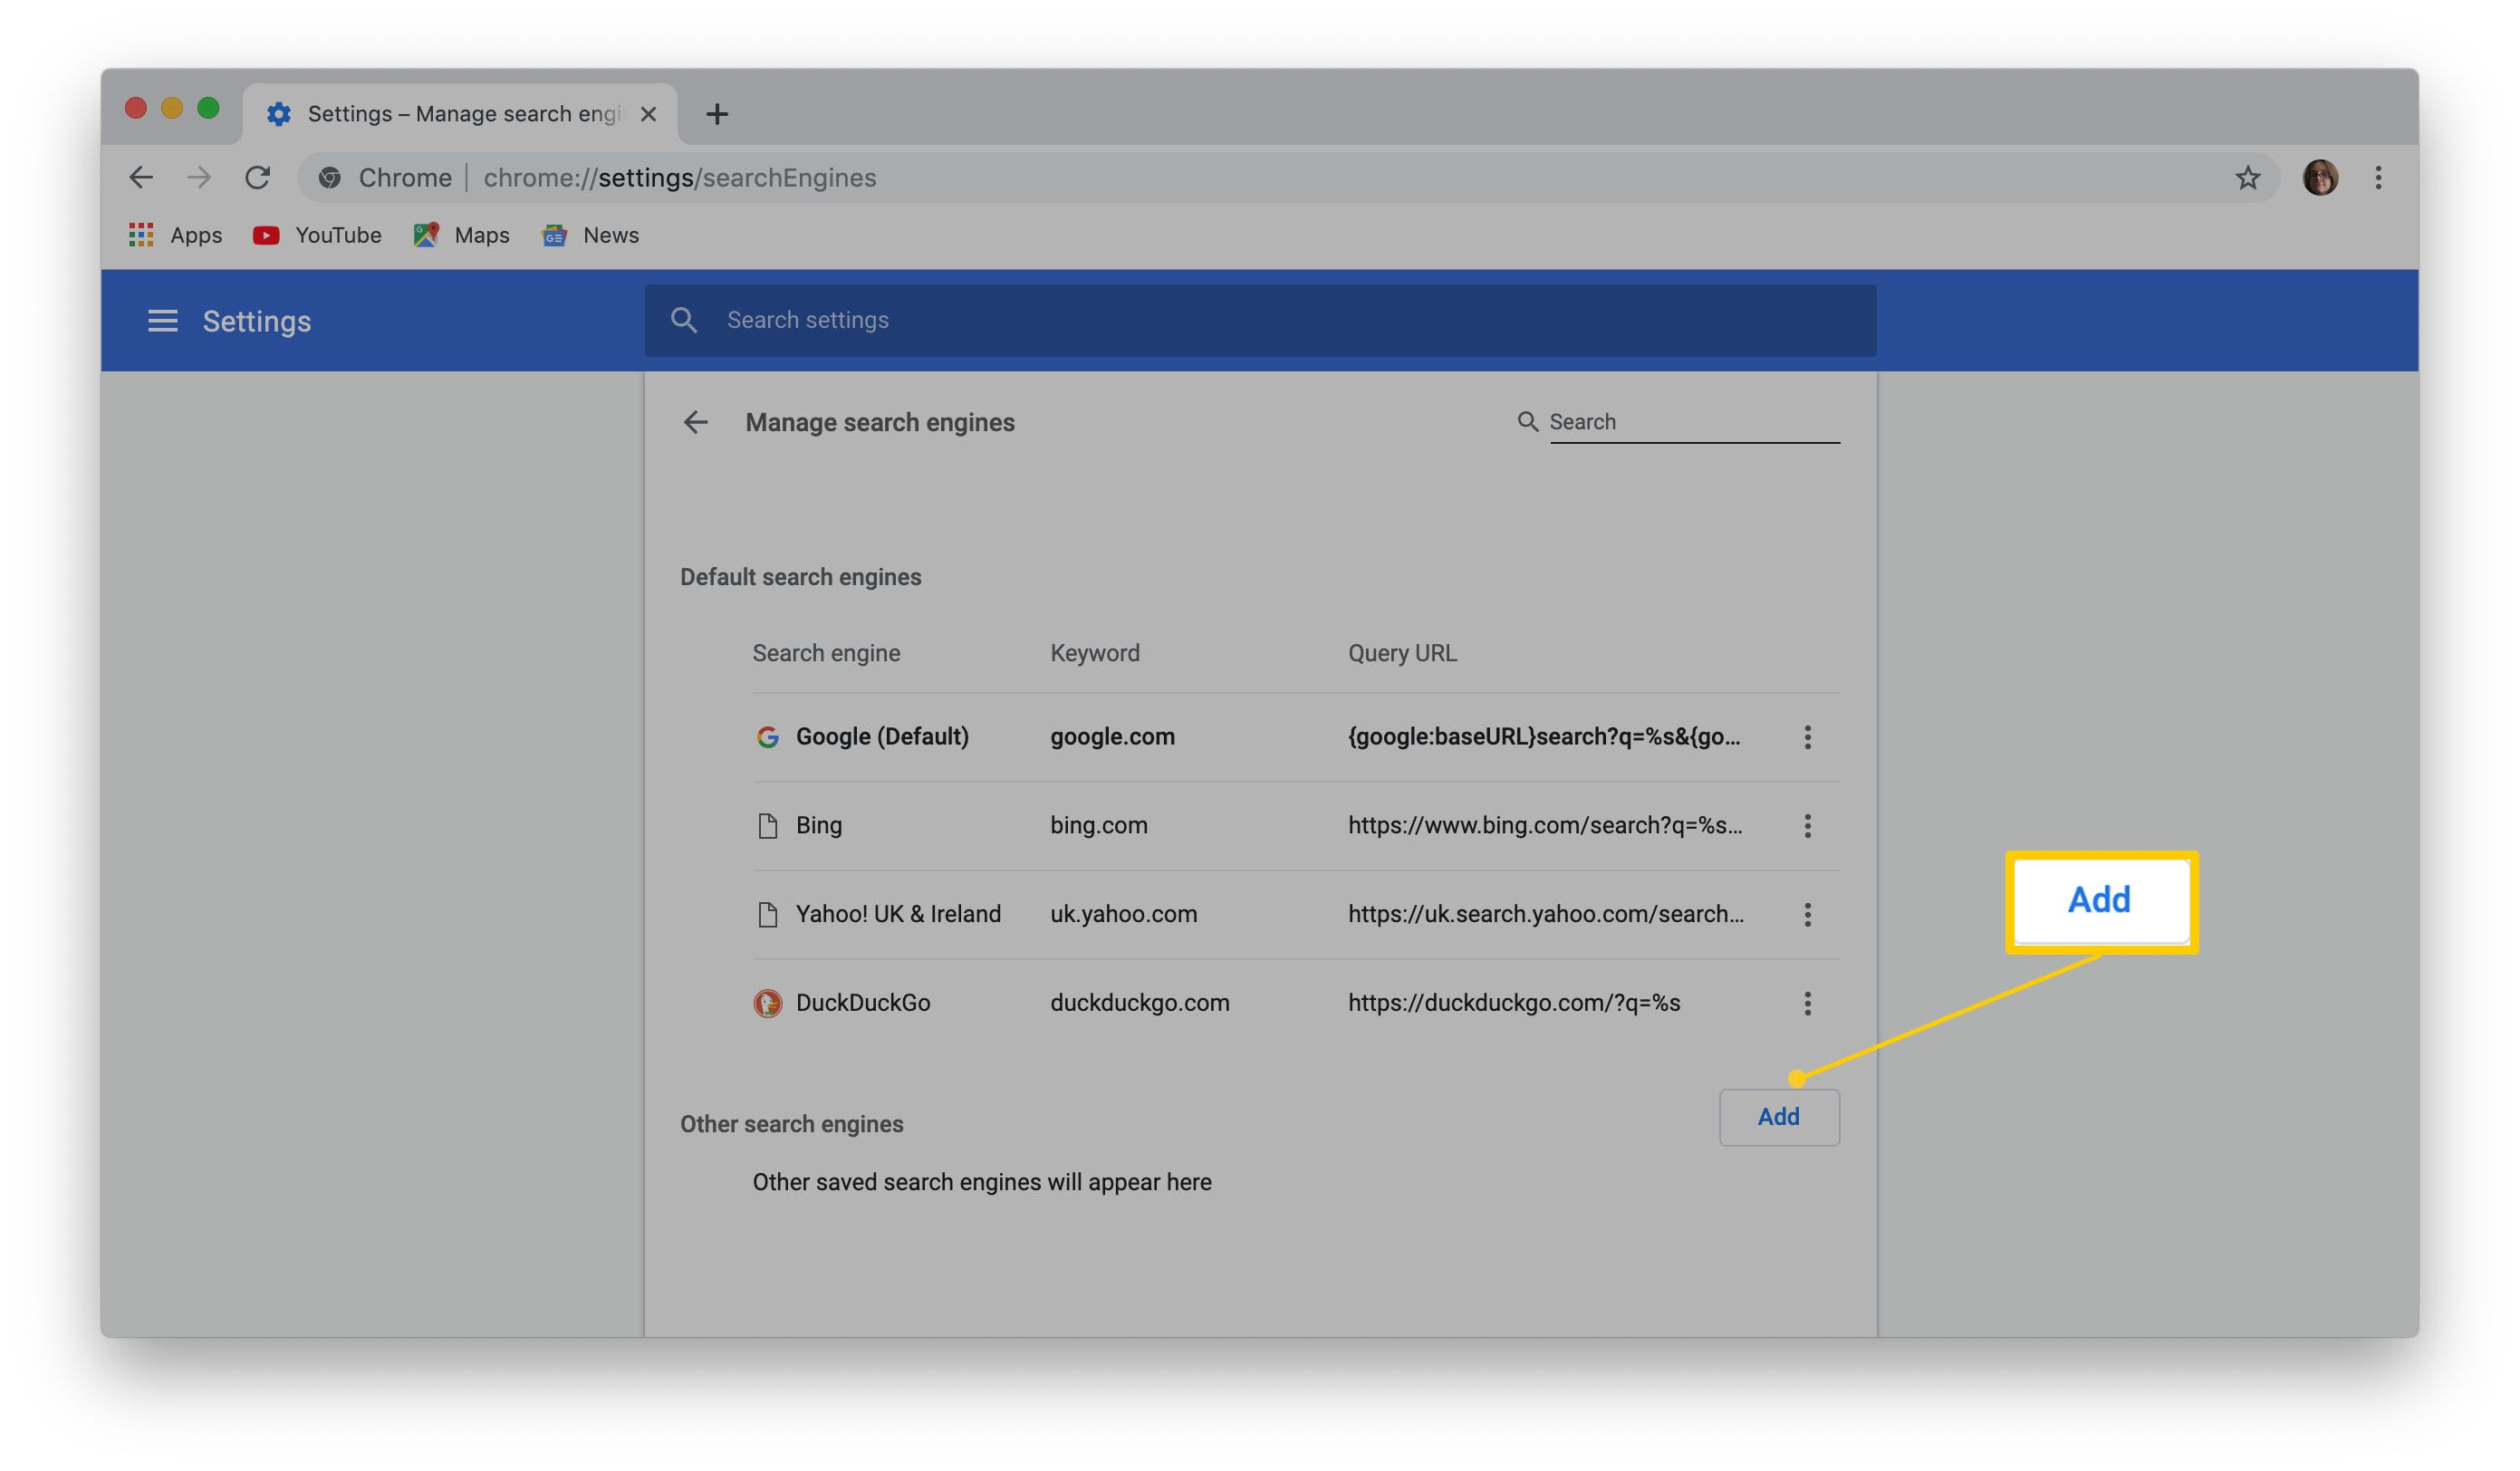 Adding a new search engine to Google Chrome